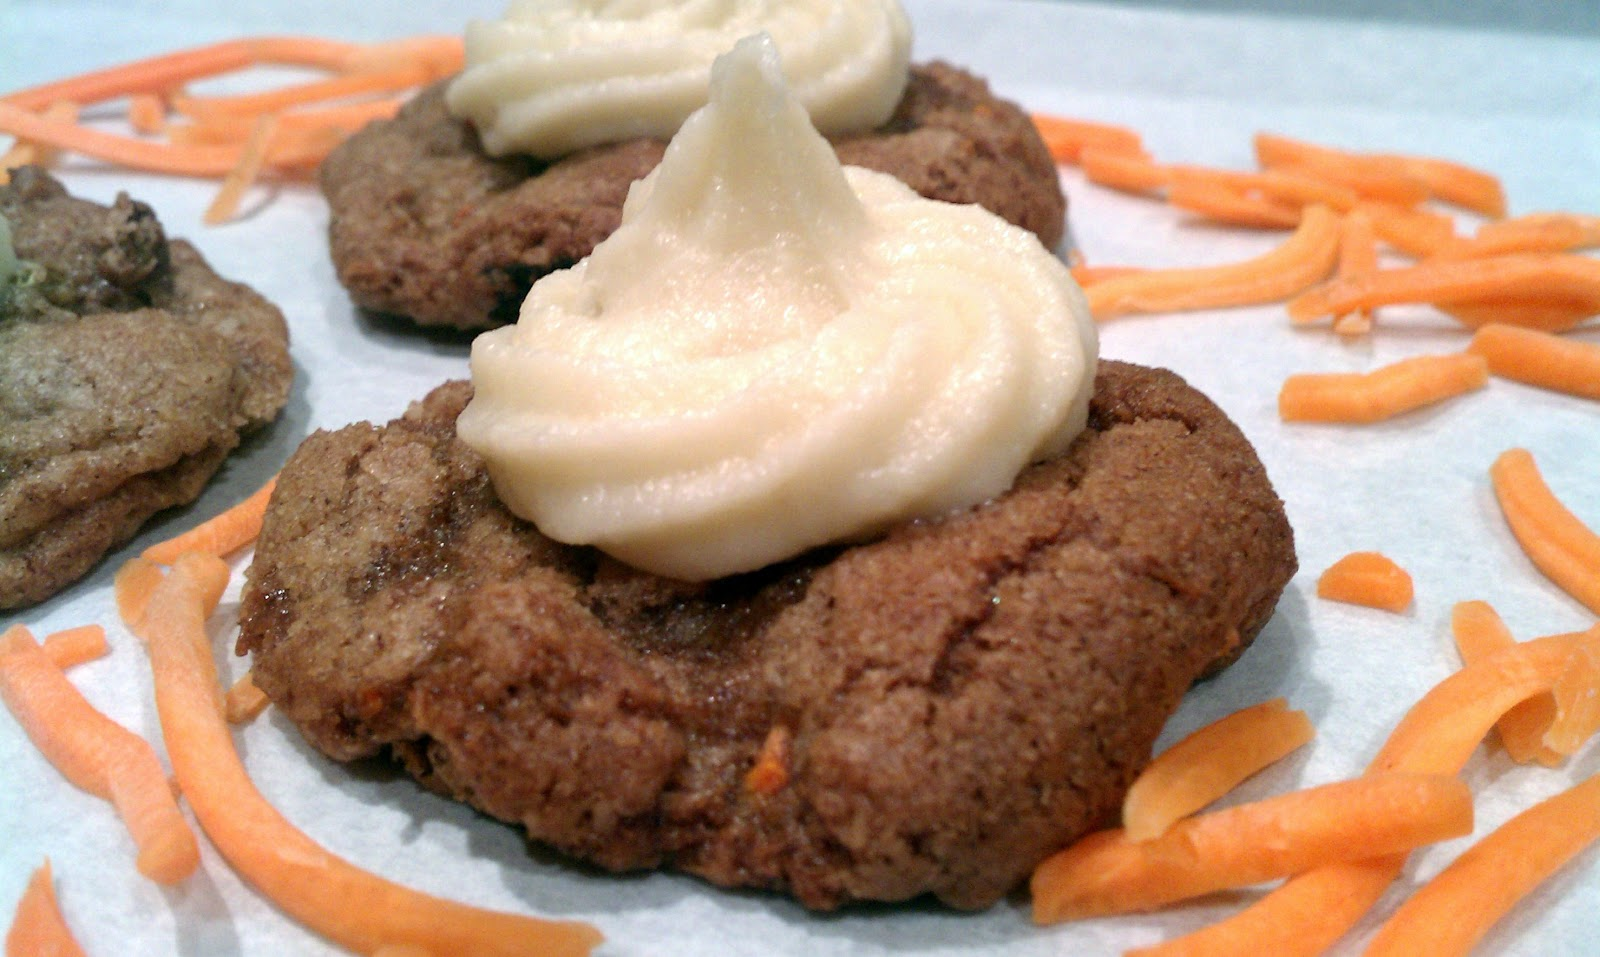 Life's Simple Measures: Carrot Cake Cookies